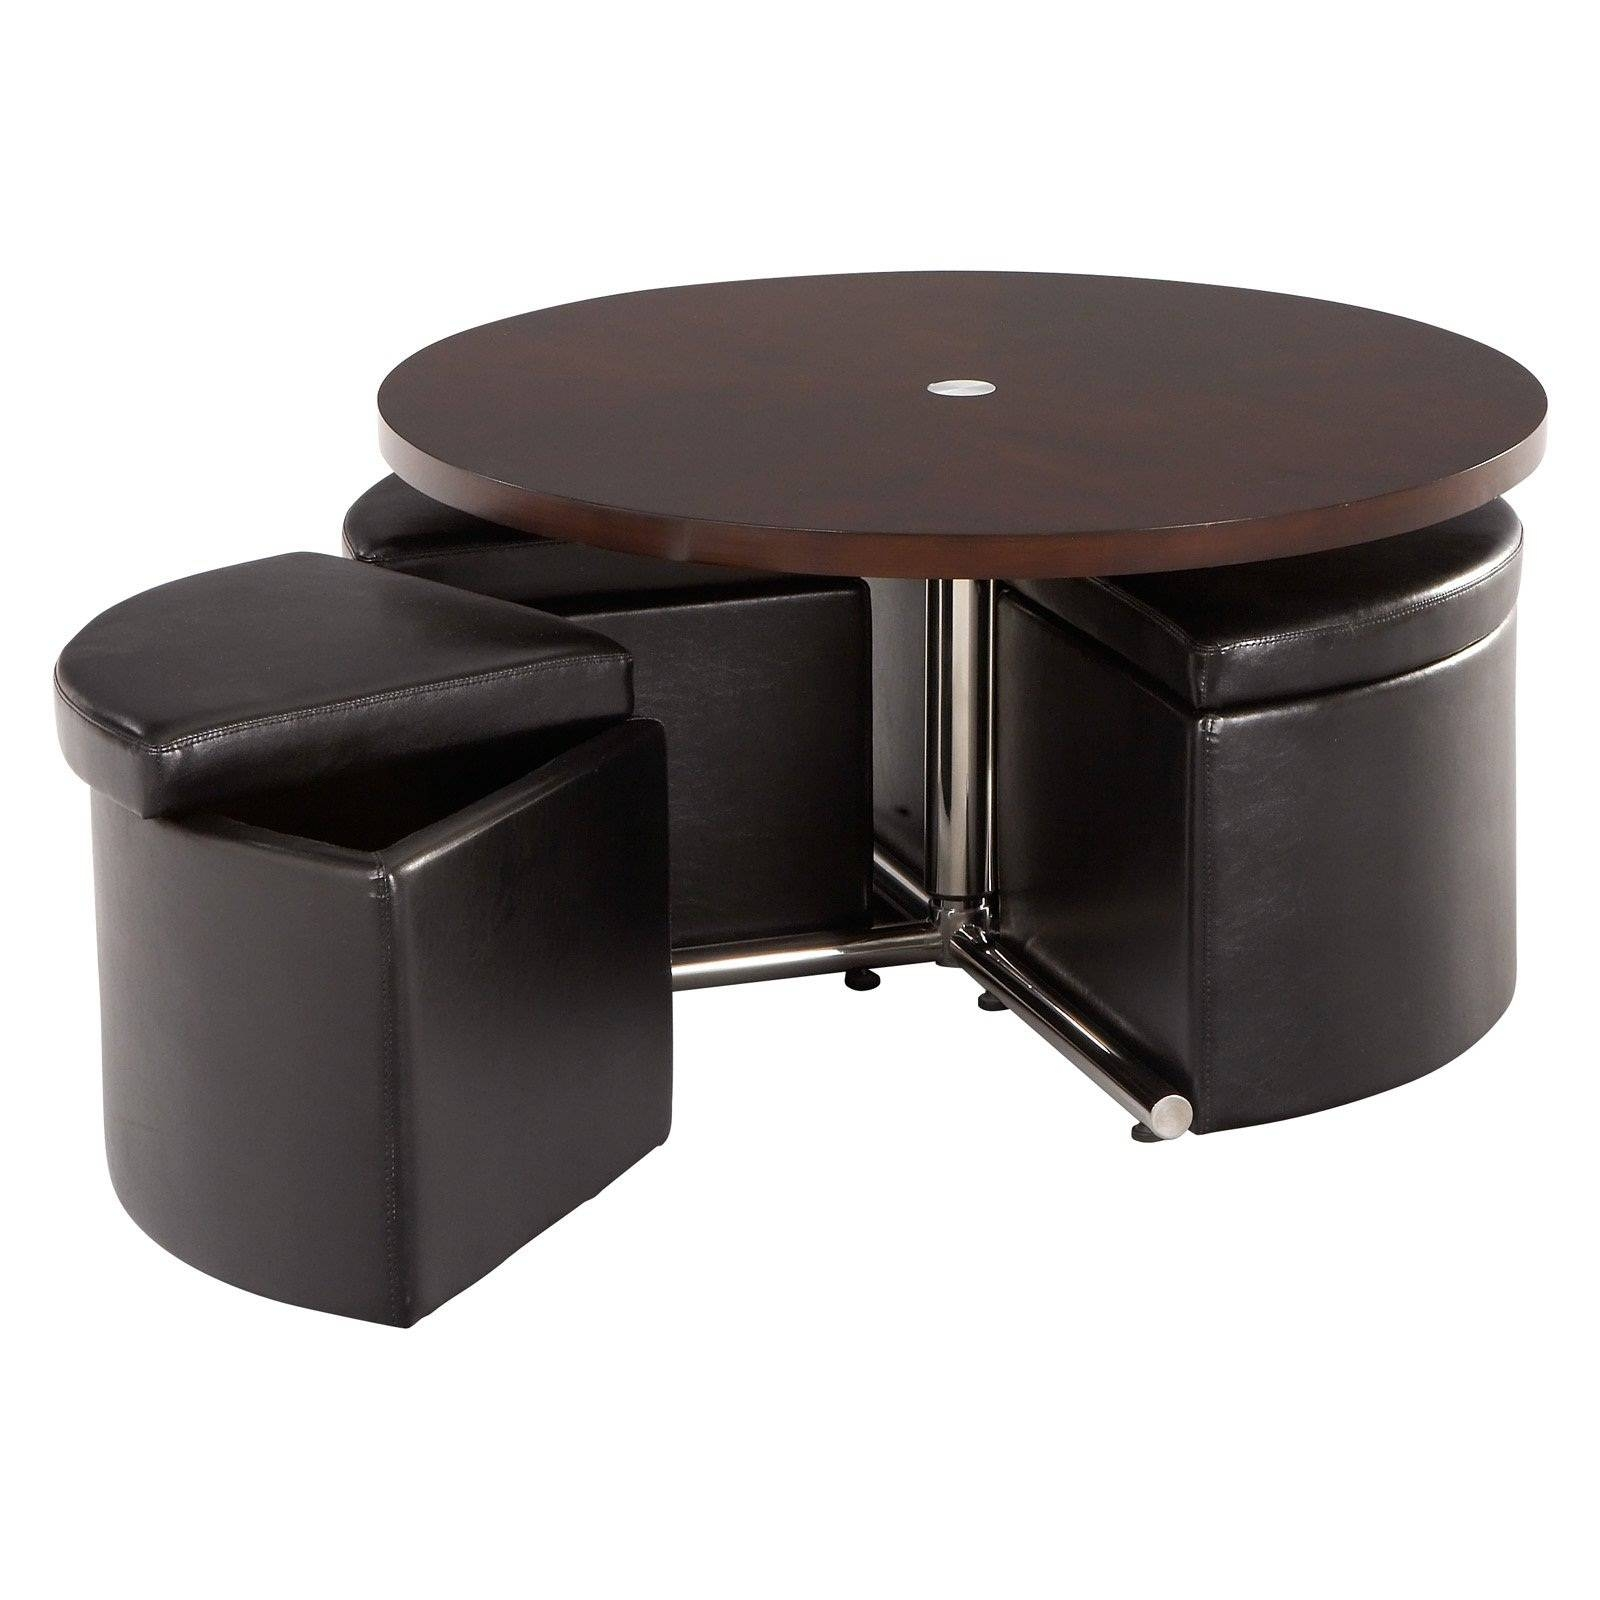 Round Coffee Table With Storage Stools Metal And Round Wood Coffee pertaining to Round Storage Coffee Tables (Image 25 of 30)